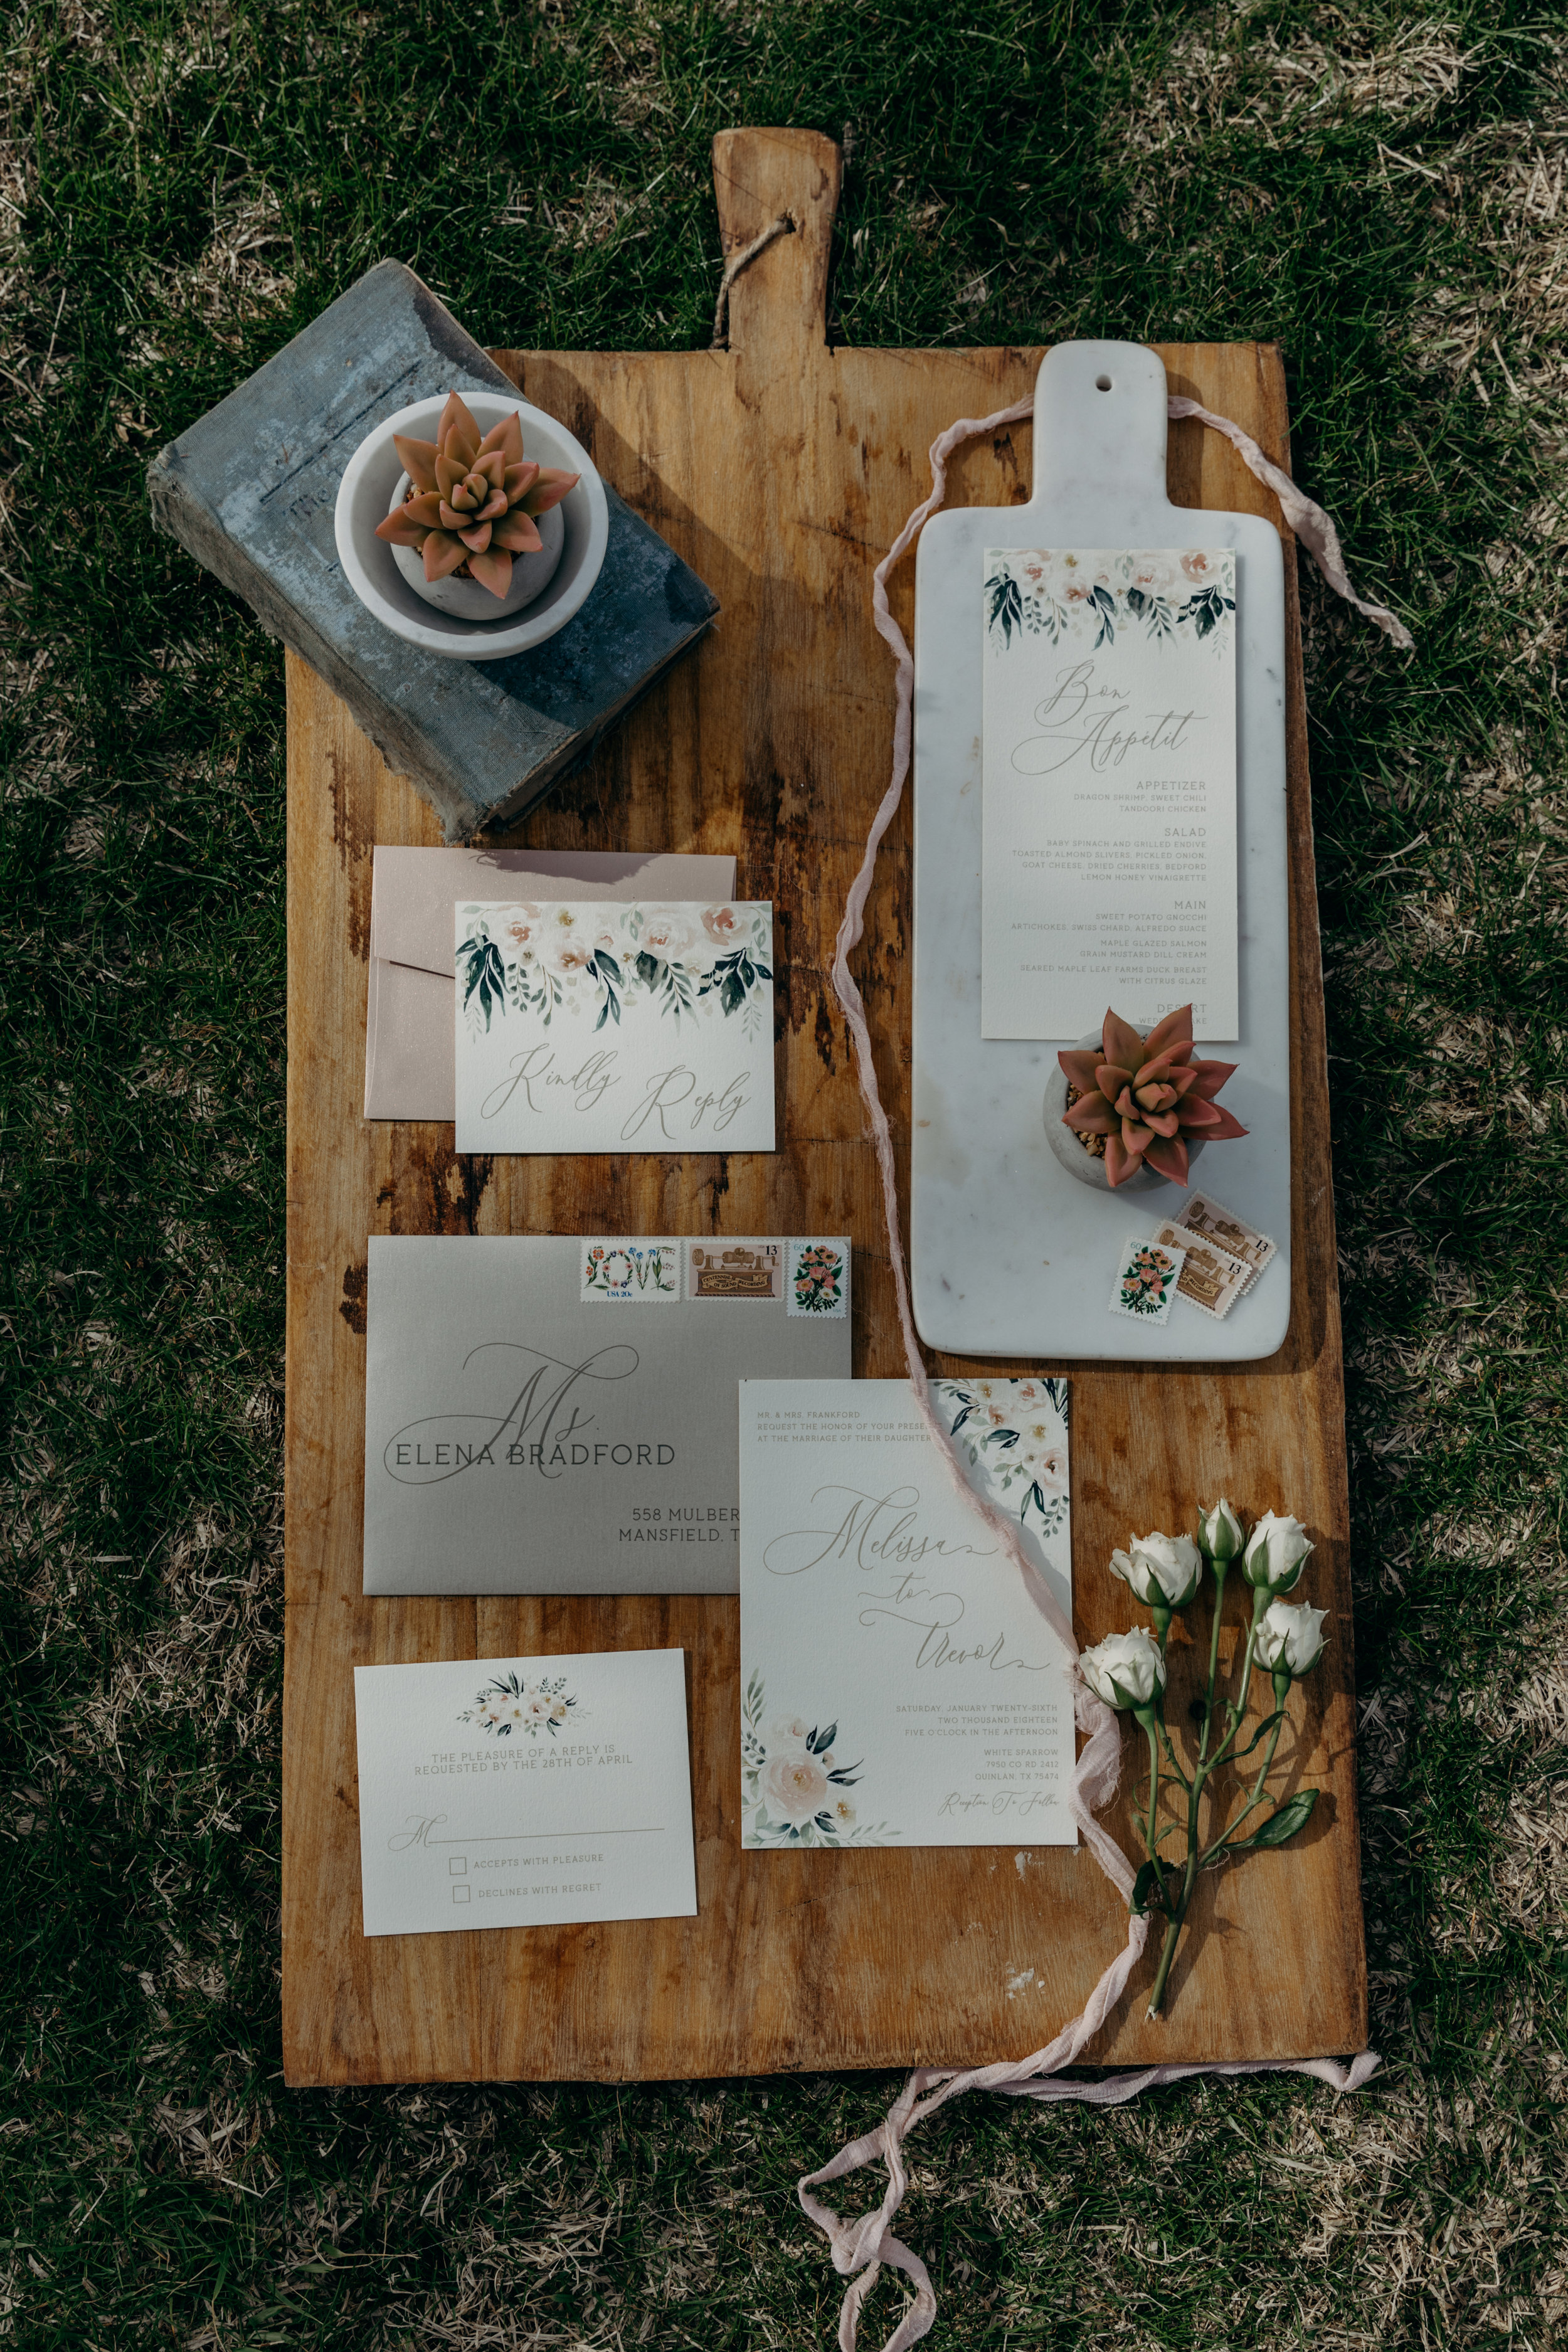 TheWhiteSparrowStyledWeddingShootinTexas-35.jpg